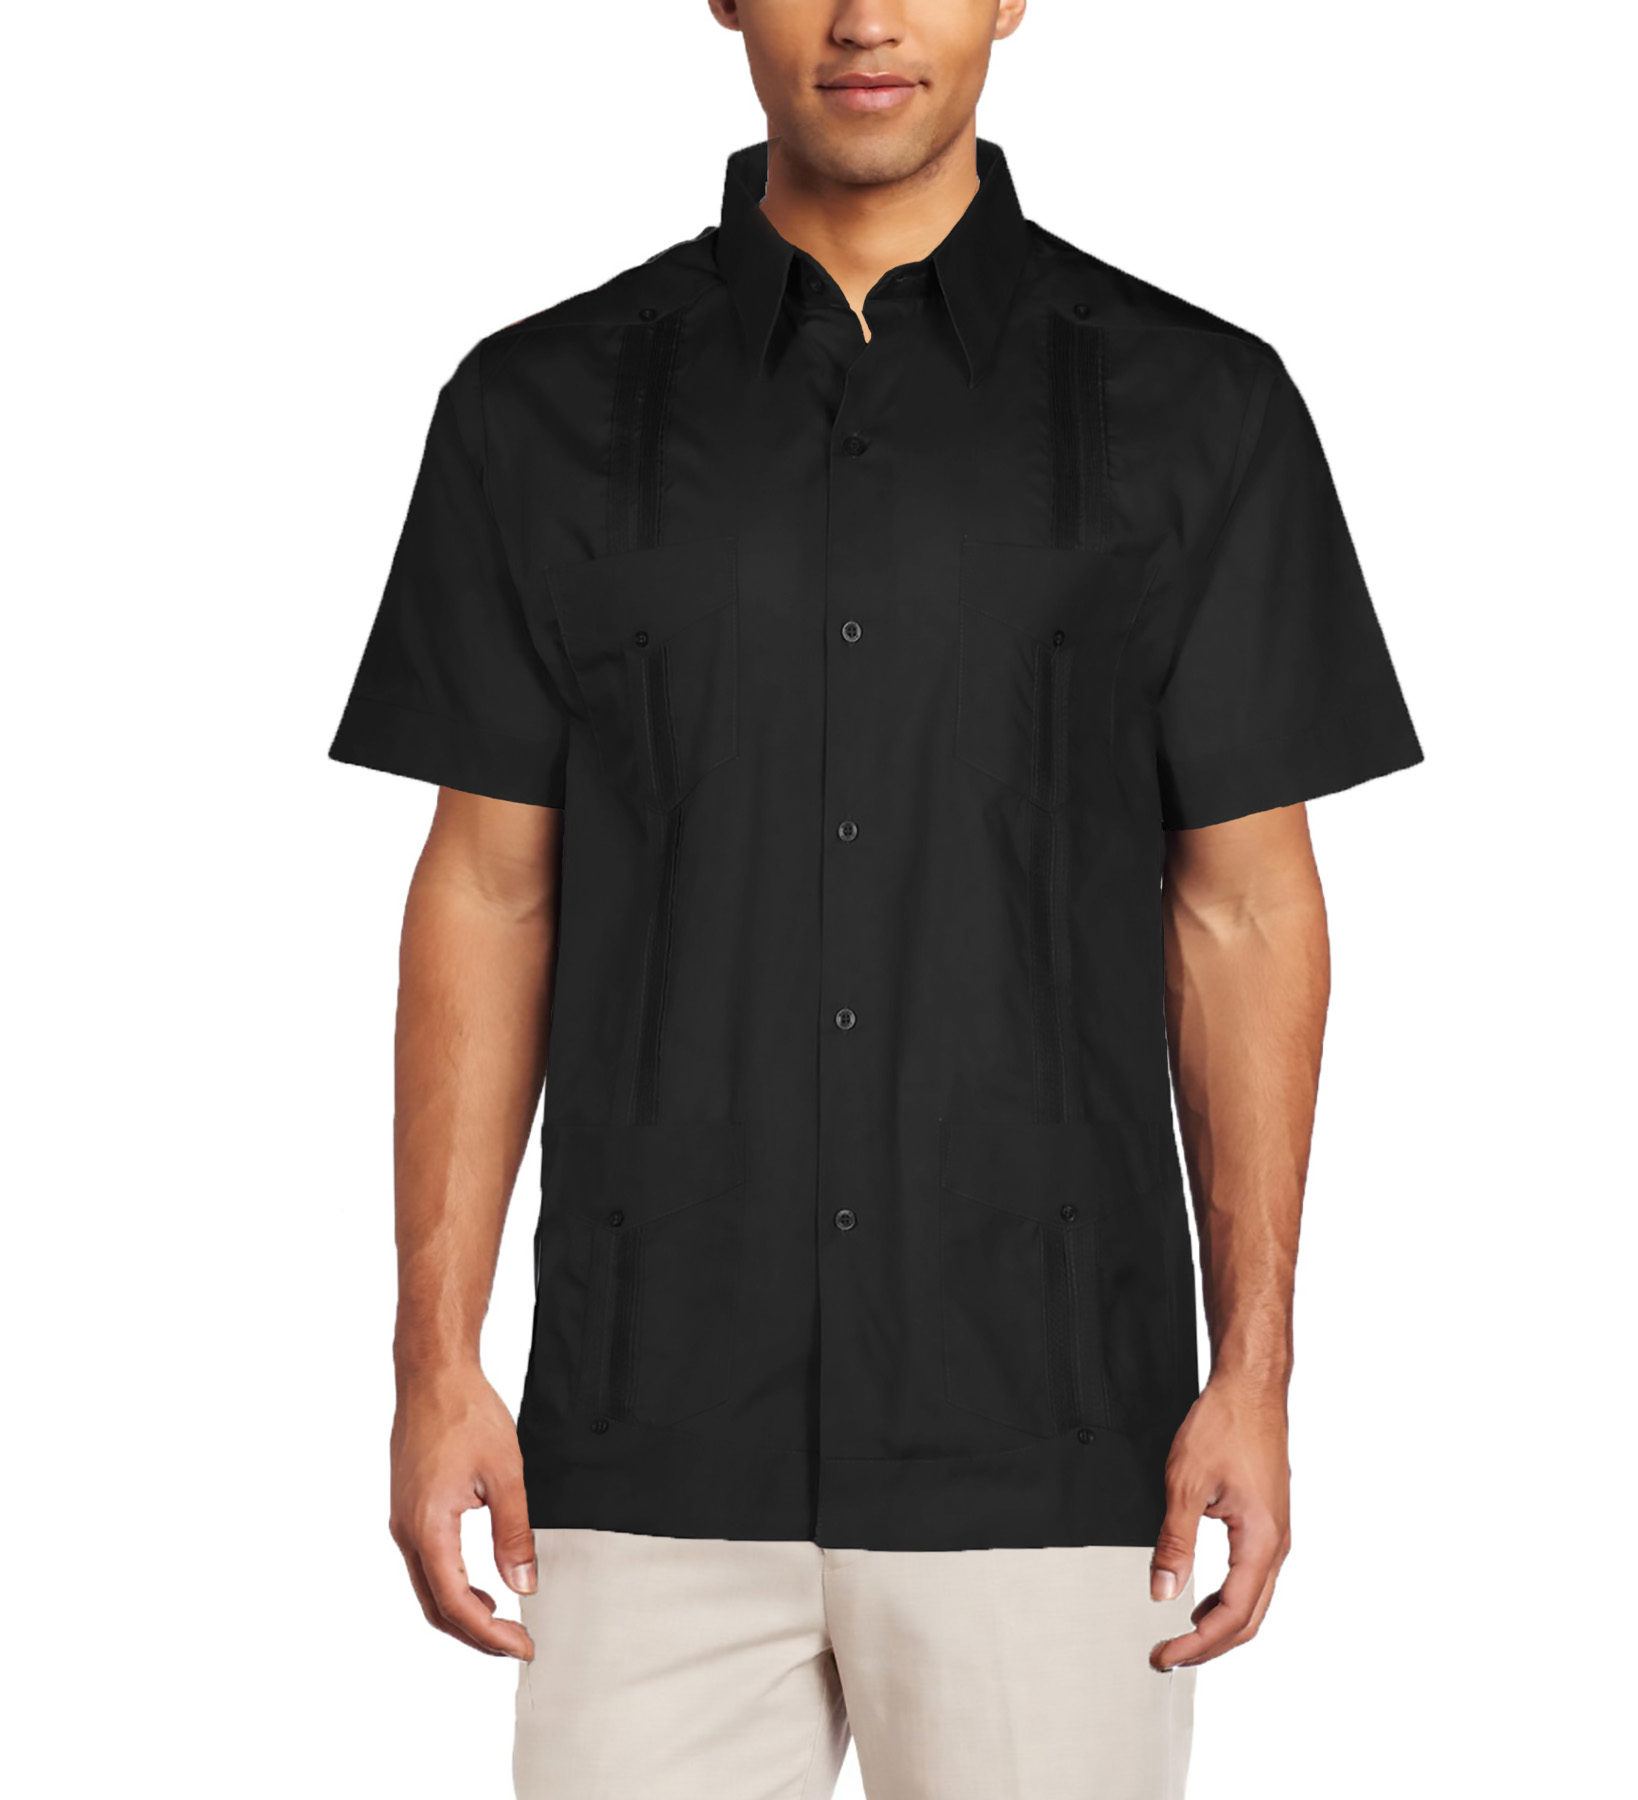 Mens Short Sleeve Henley Shirts